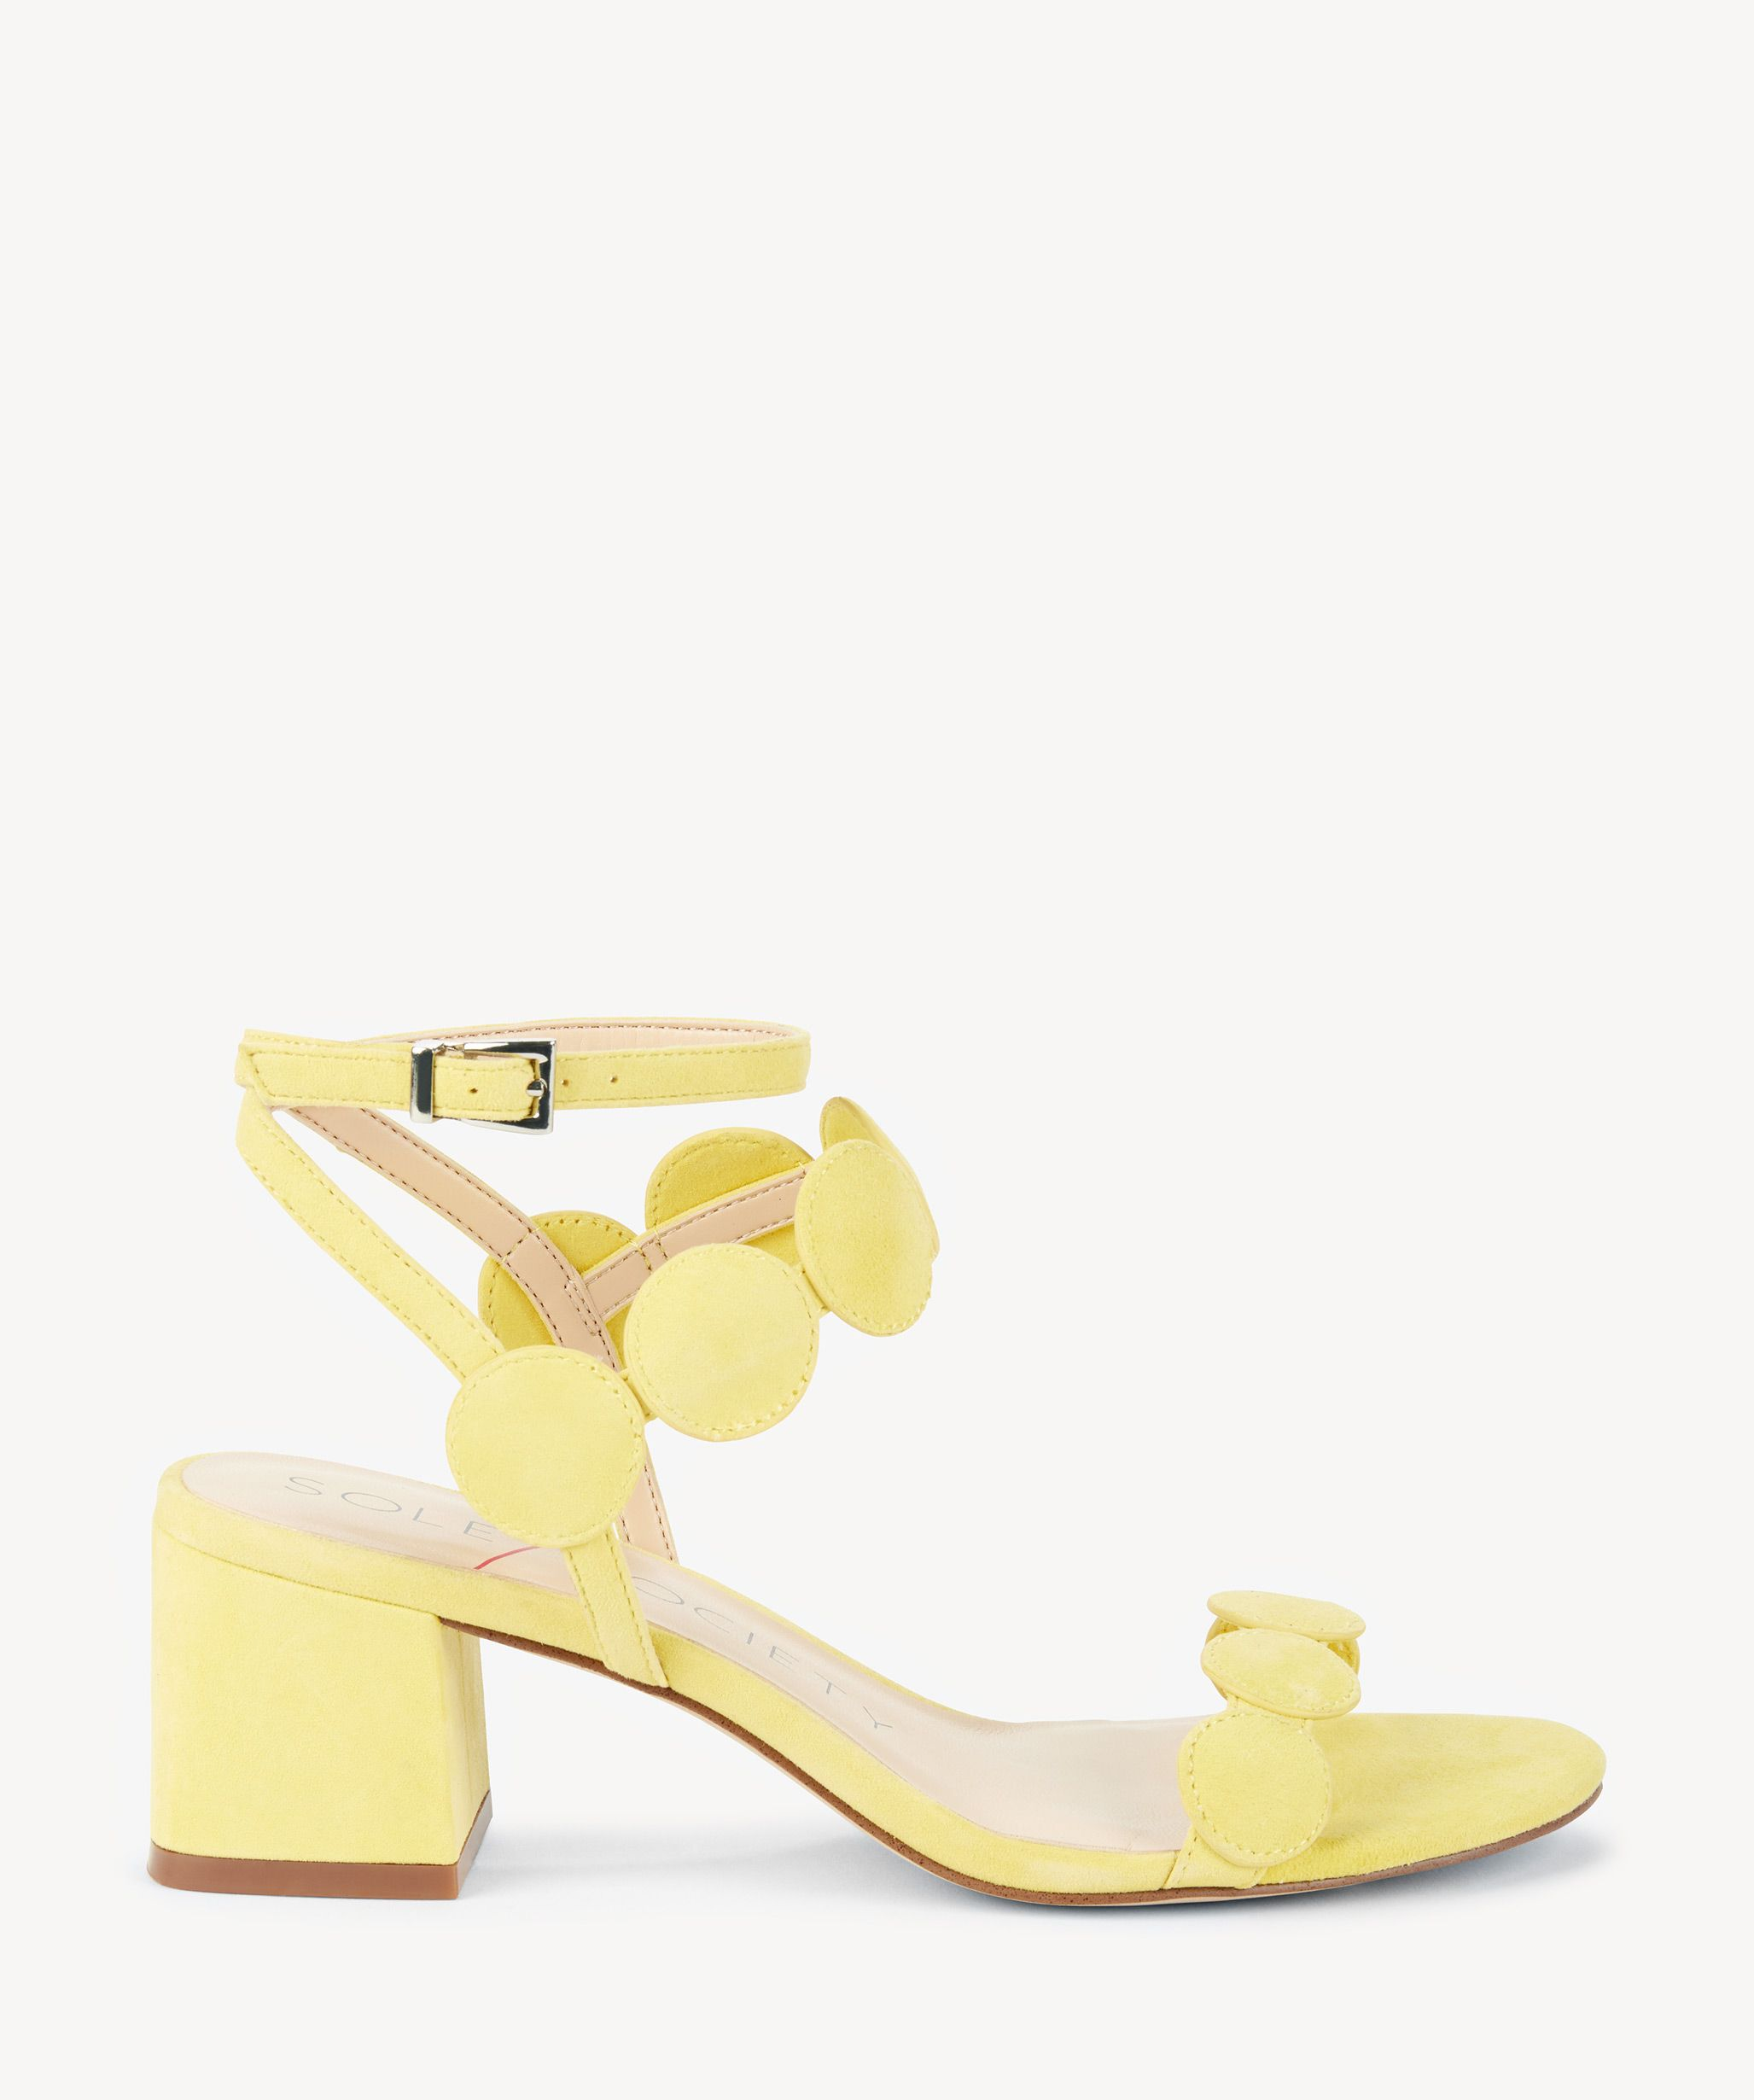 1fb0ed52e4608d Sole Society Shea Strappy Heeled Sandals Pale Yellow